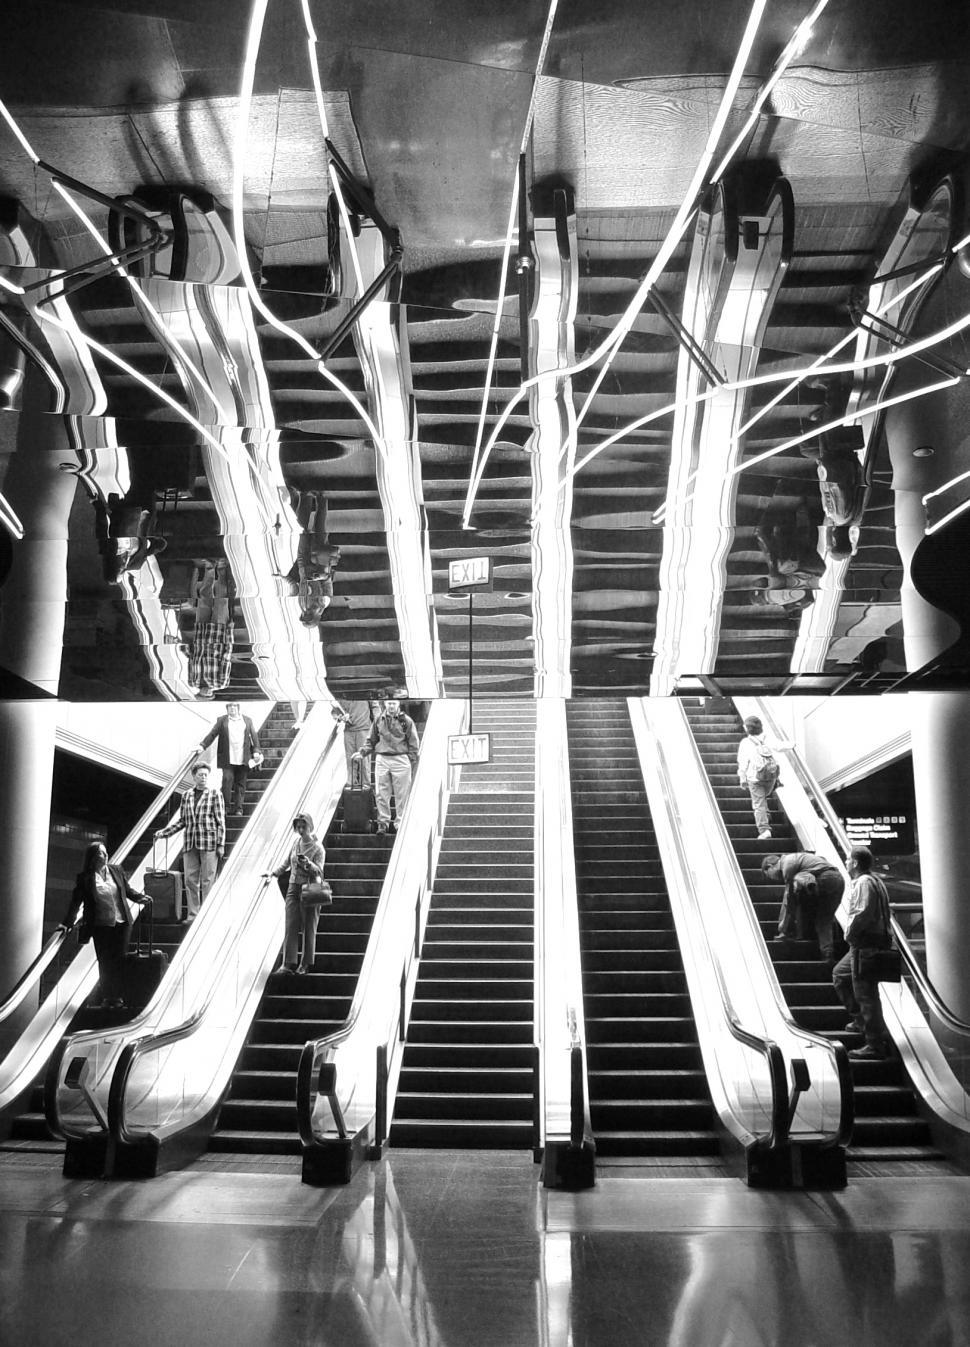 Download Free Stock Photo of Escalator Reflection at the Airport